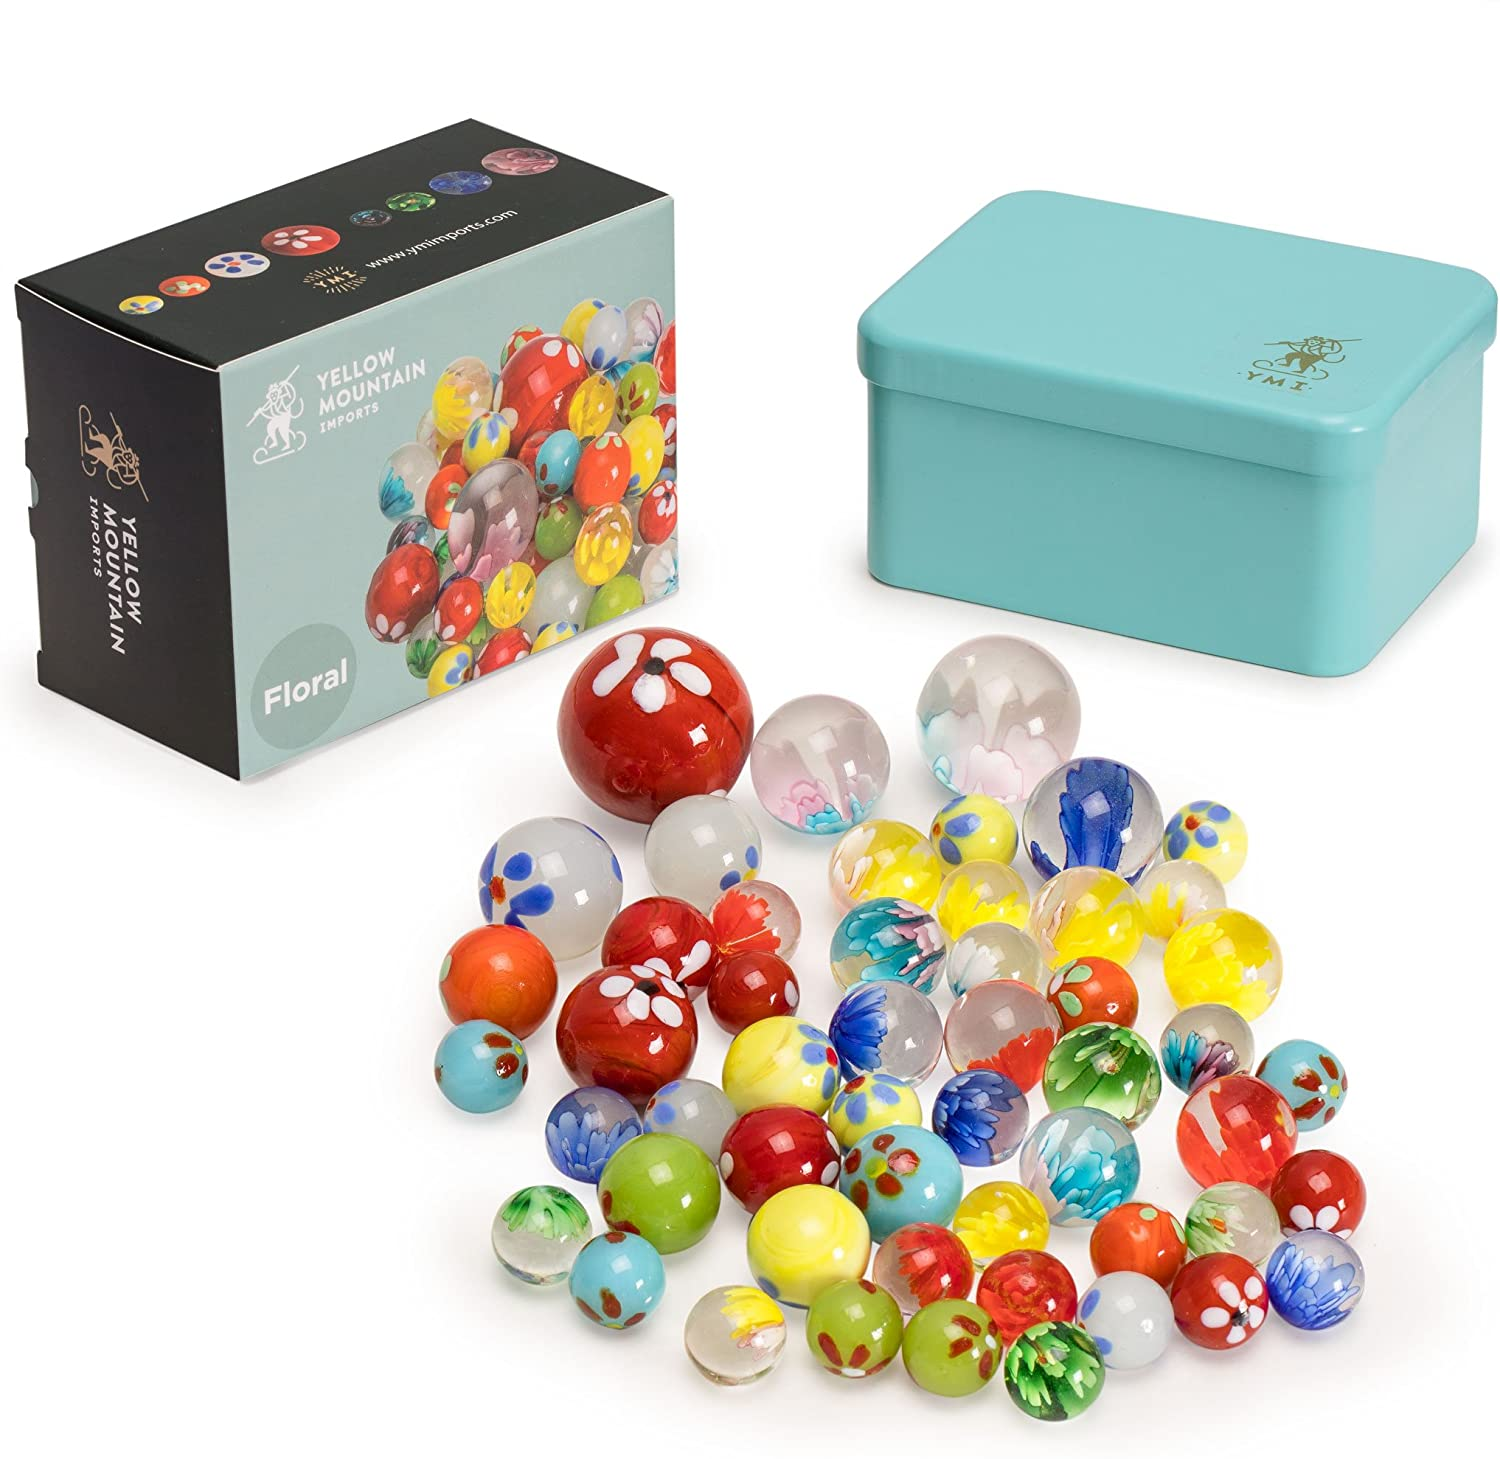 tin of marbles, glass marbles, toy marbles, glass ball, glass bead, children's toy